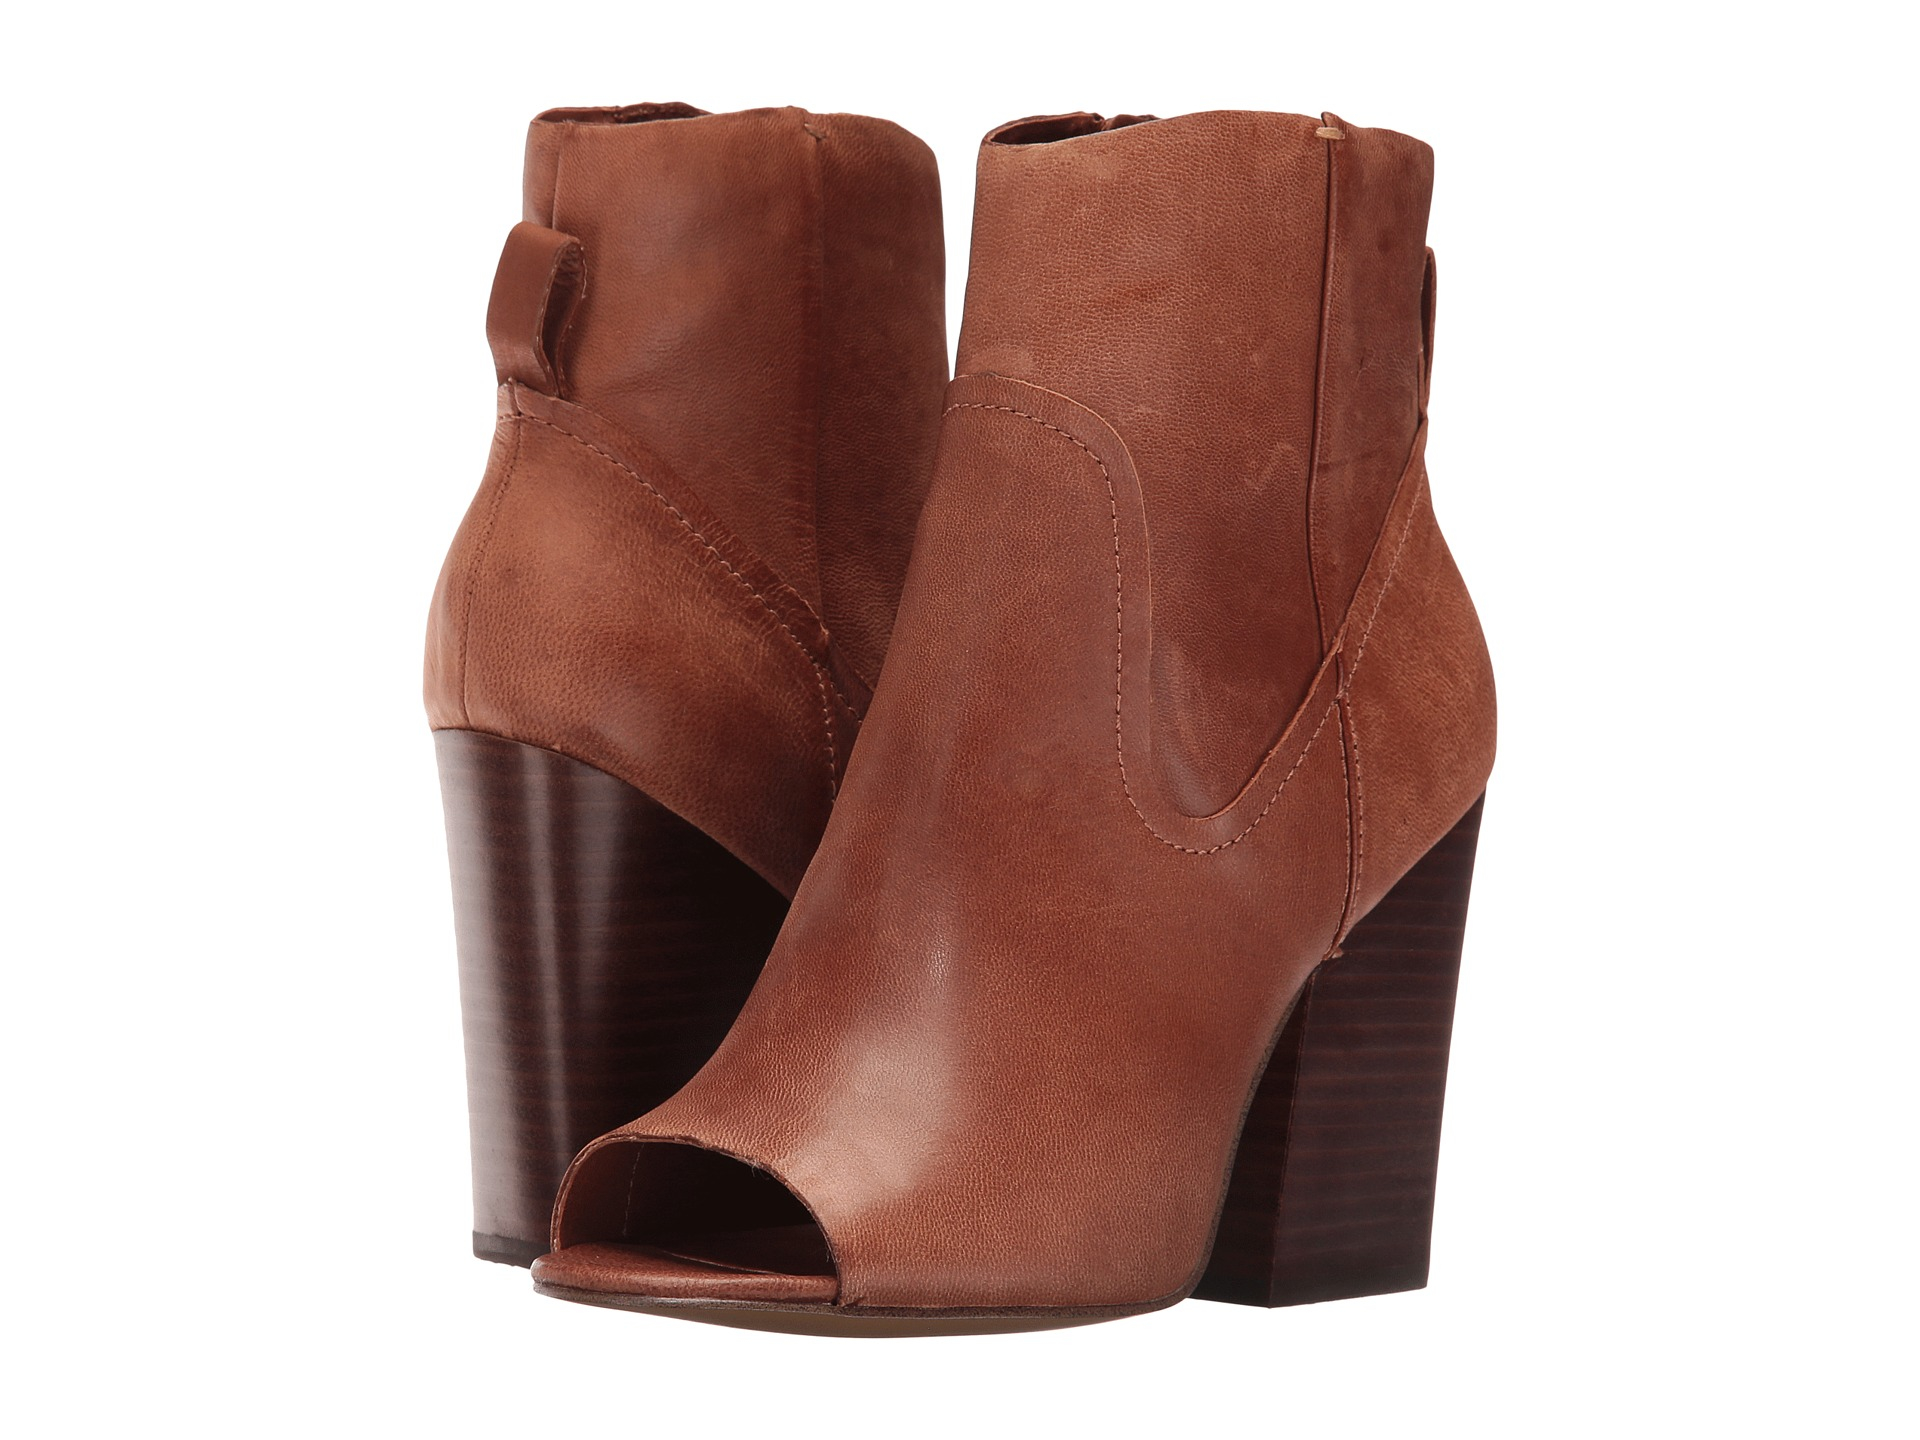 66494e35eff Lyst - Steve Madden Veronah Boot in Brown